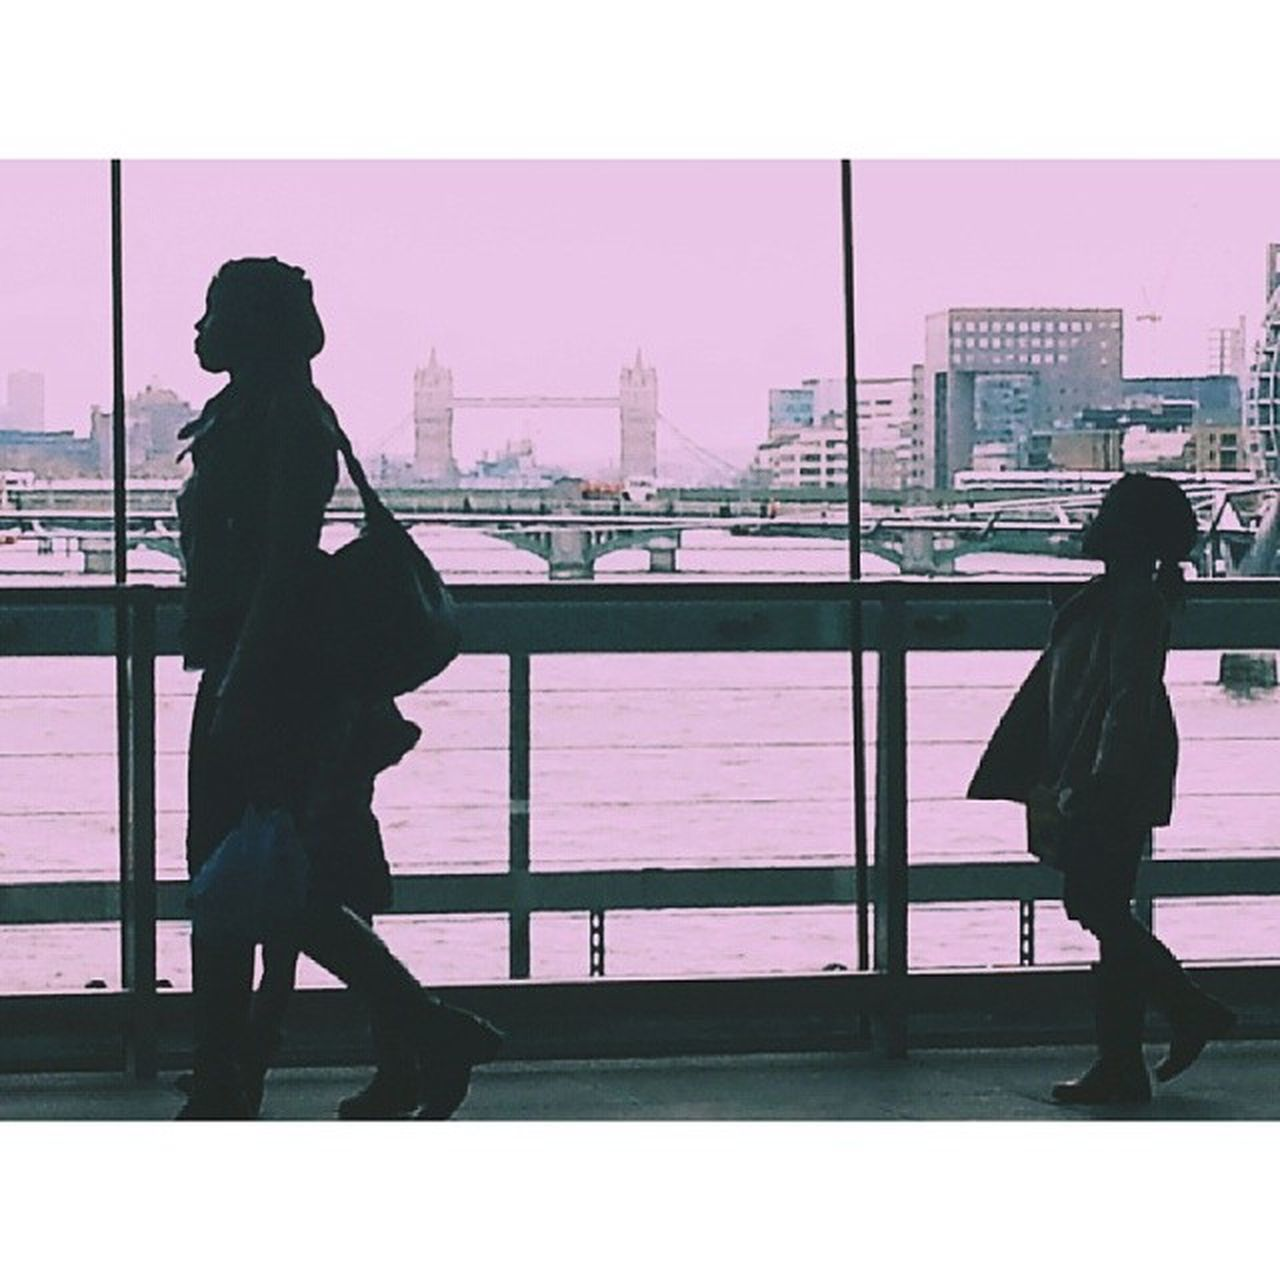 Blackfriars Station Silhouette tower bridge Igers vsco androidphotographers